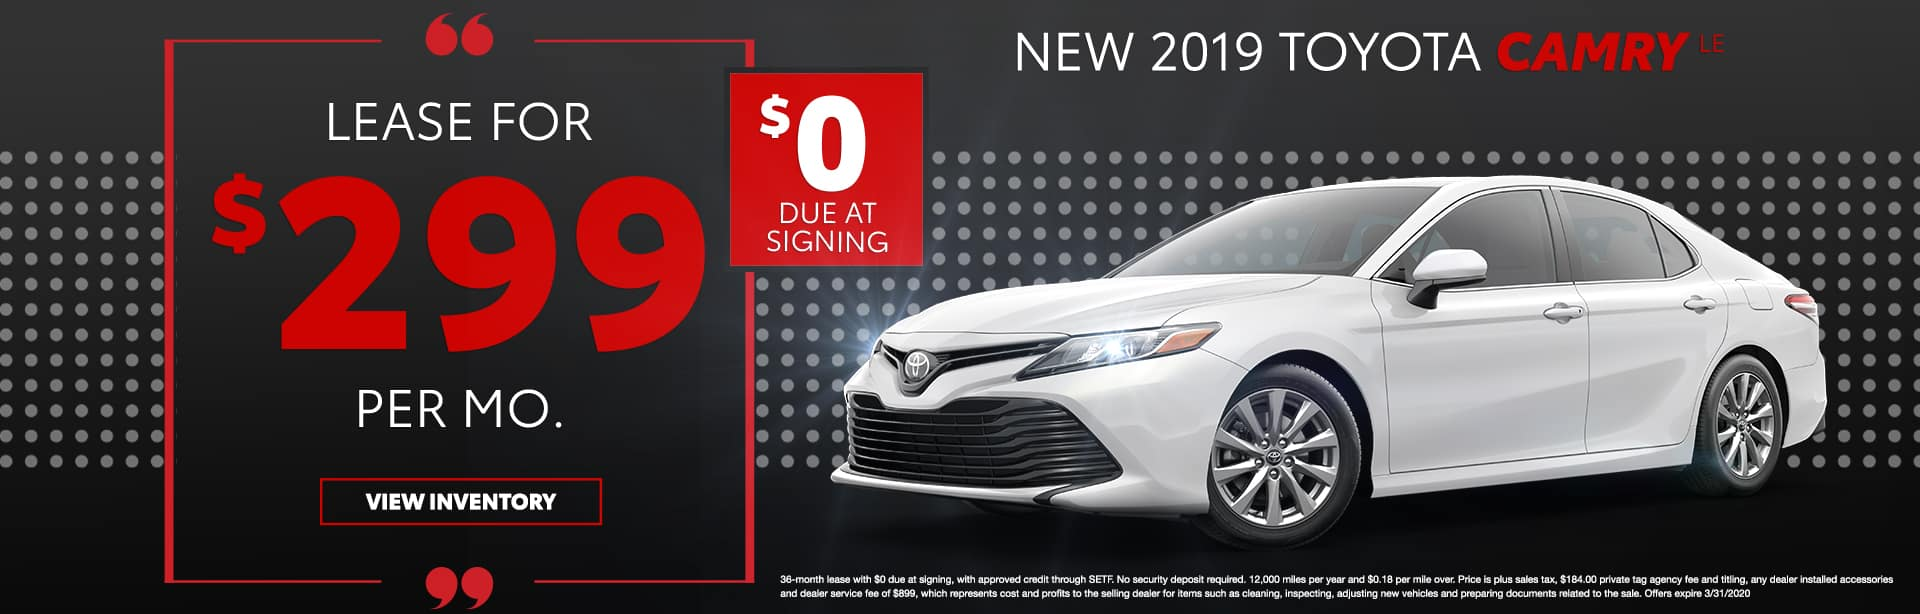 New 2019 Toyota Camry LE | Lease For $299 Per Mo | $0 Due At Signing